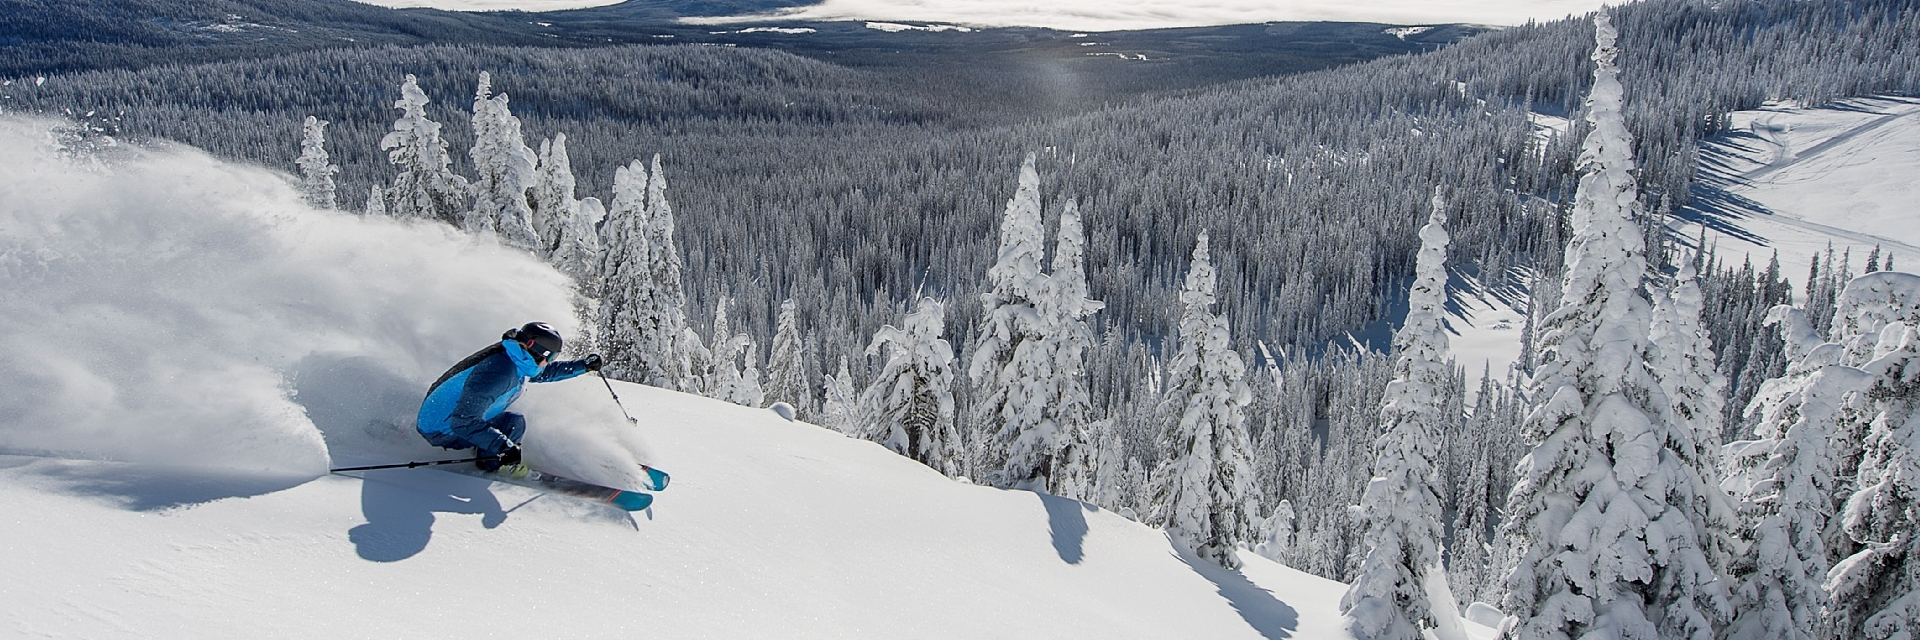 A skier going down a hill with snow flying behind them.